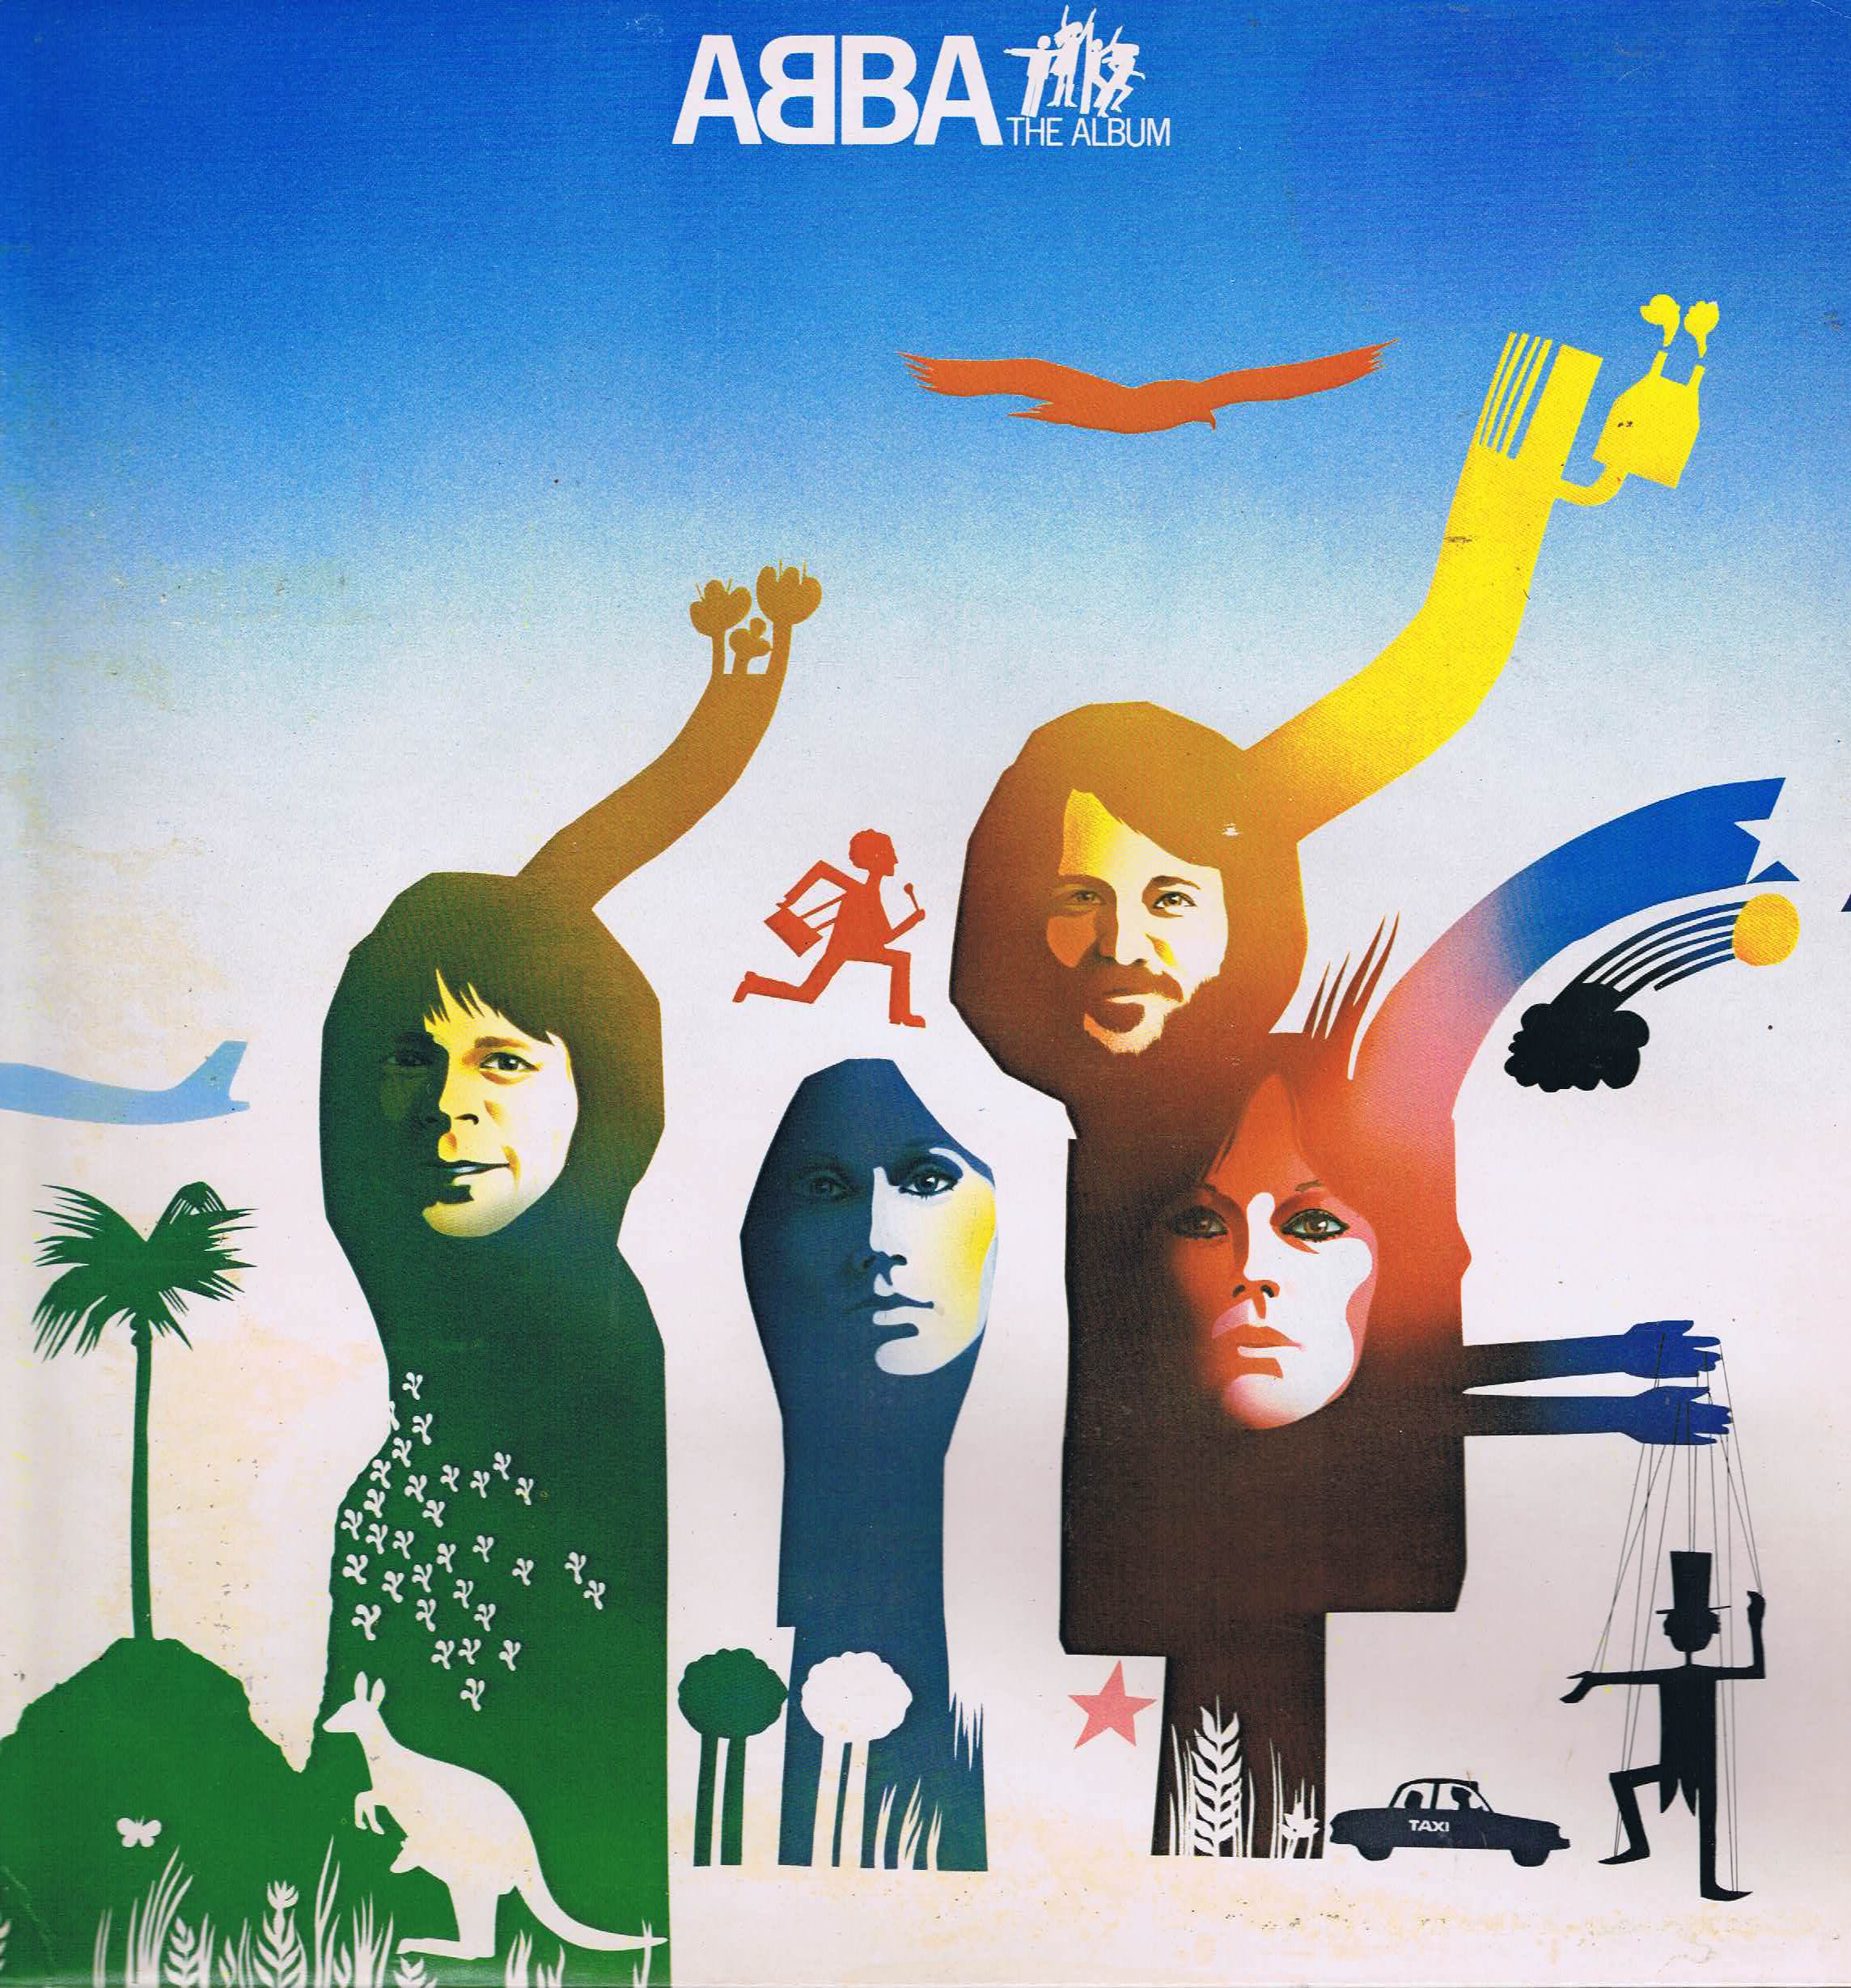 Abba The Album Vinyl